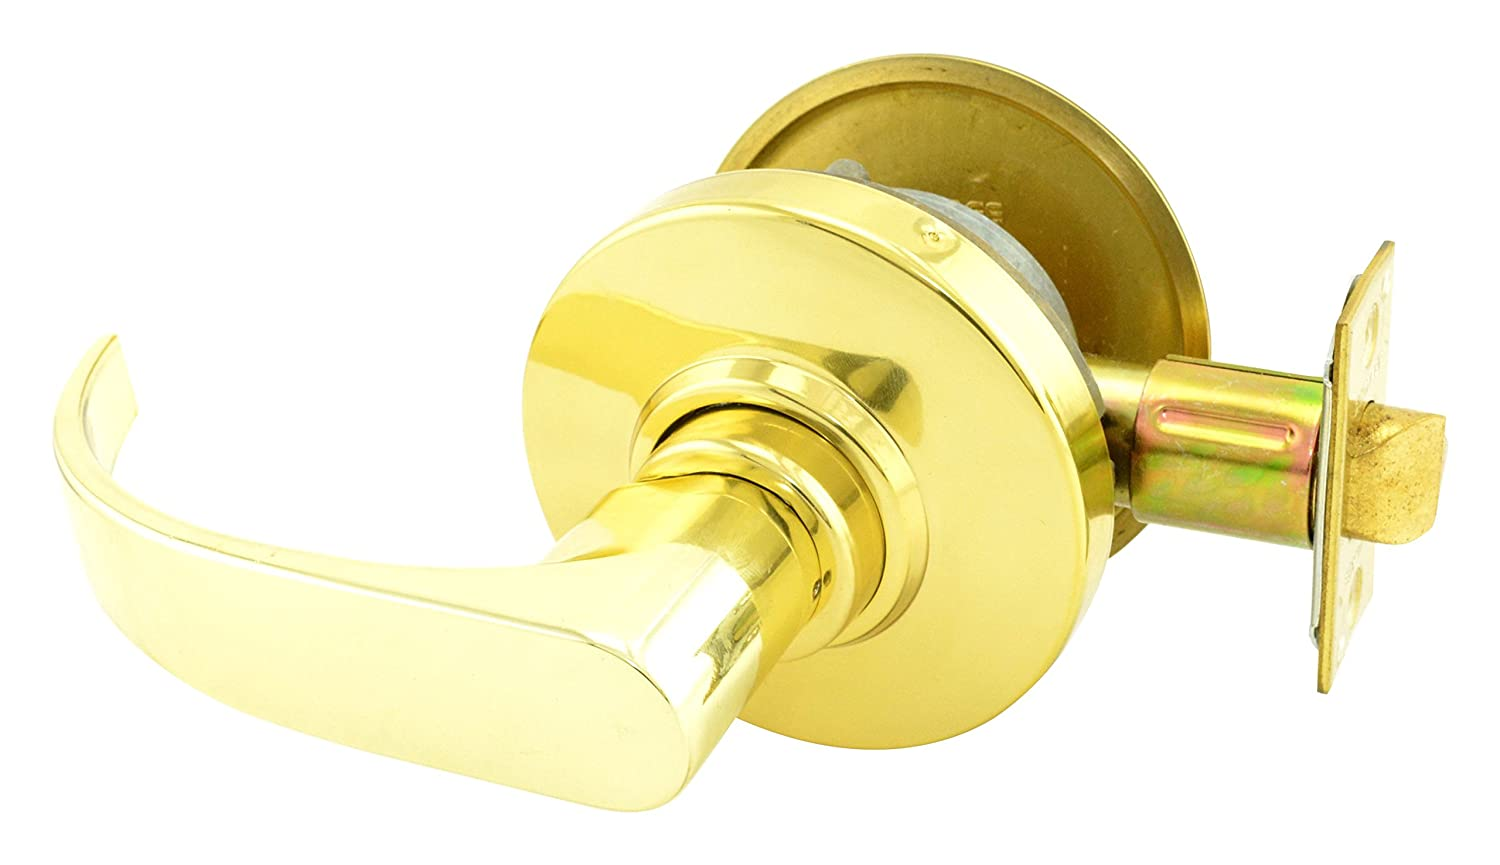 Neptune Lever Design Bright Brass Finish Schlage commercial AL50PDNEP605 AL Series Grade 2 Cylindrical Lock Entry//Office Function Push Button Locking